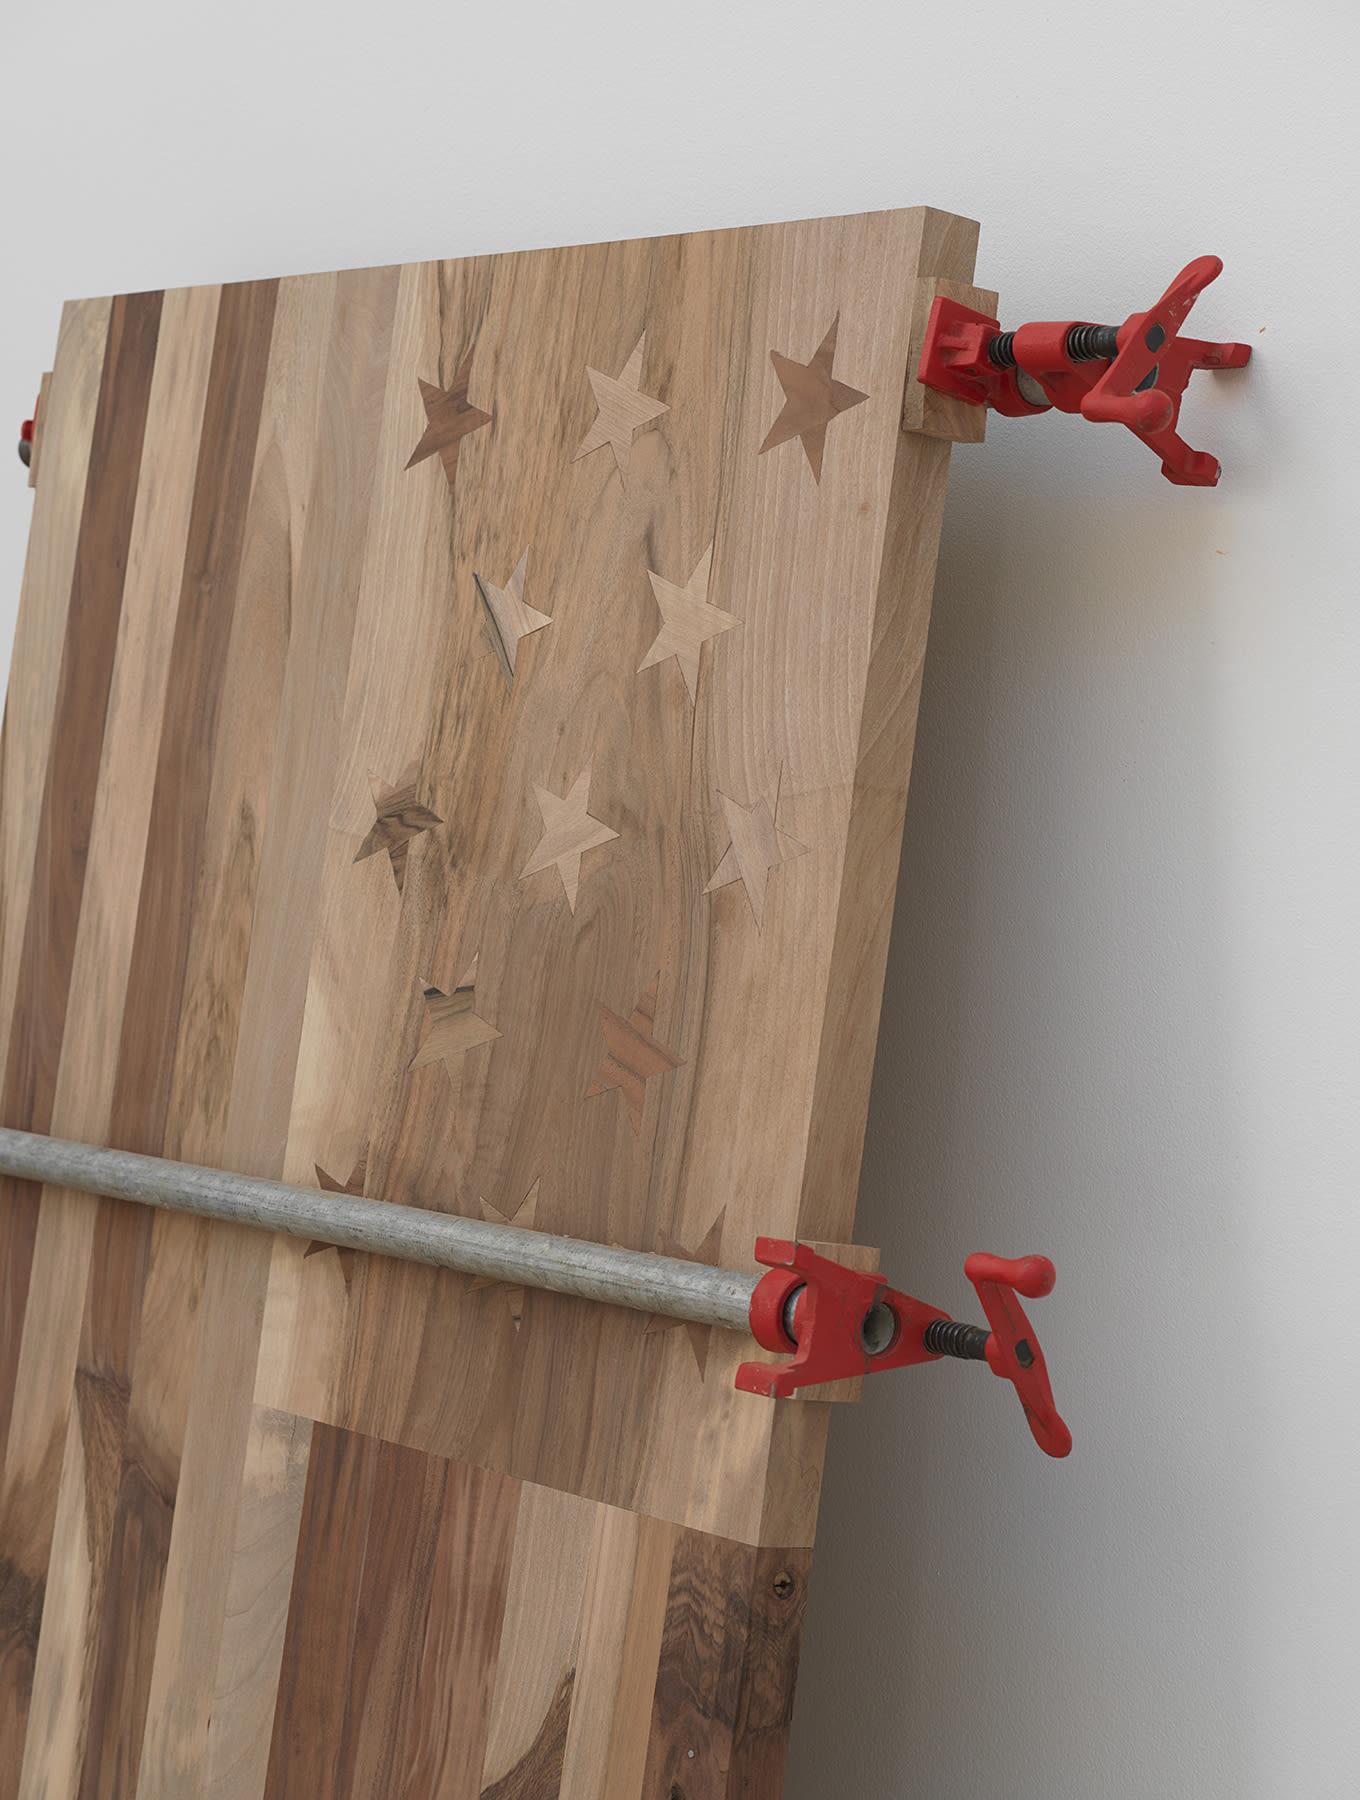 Install view of wooden American flag.